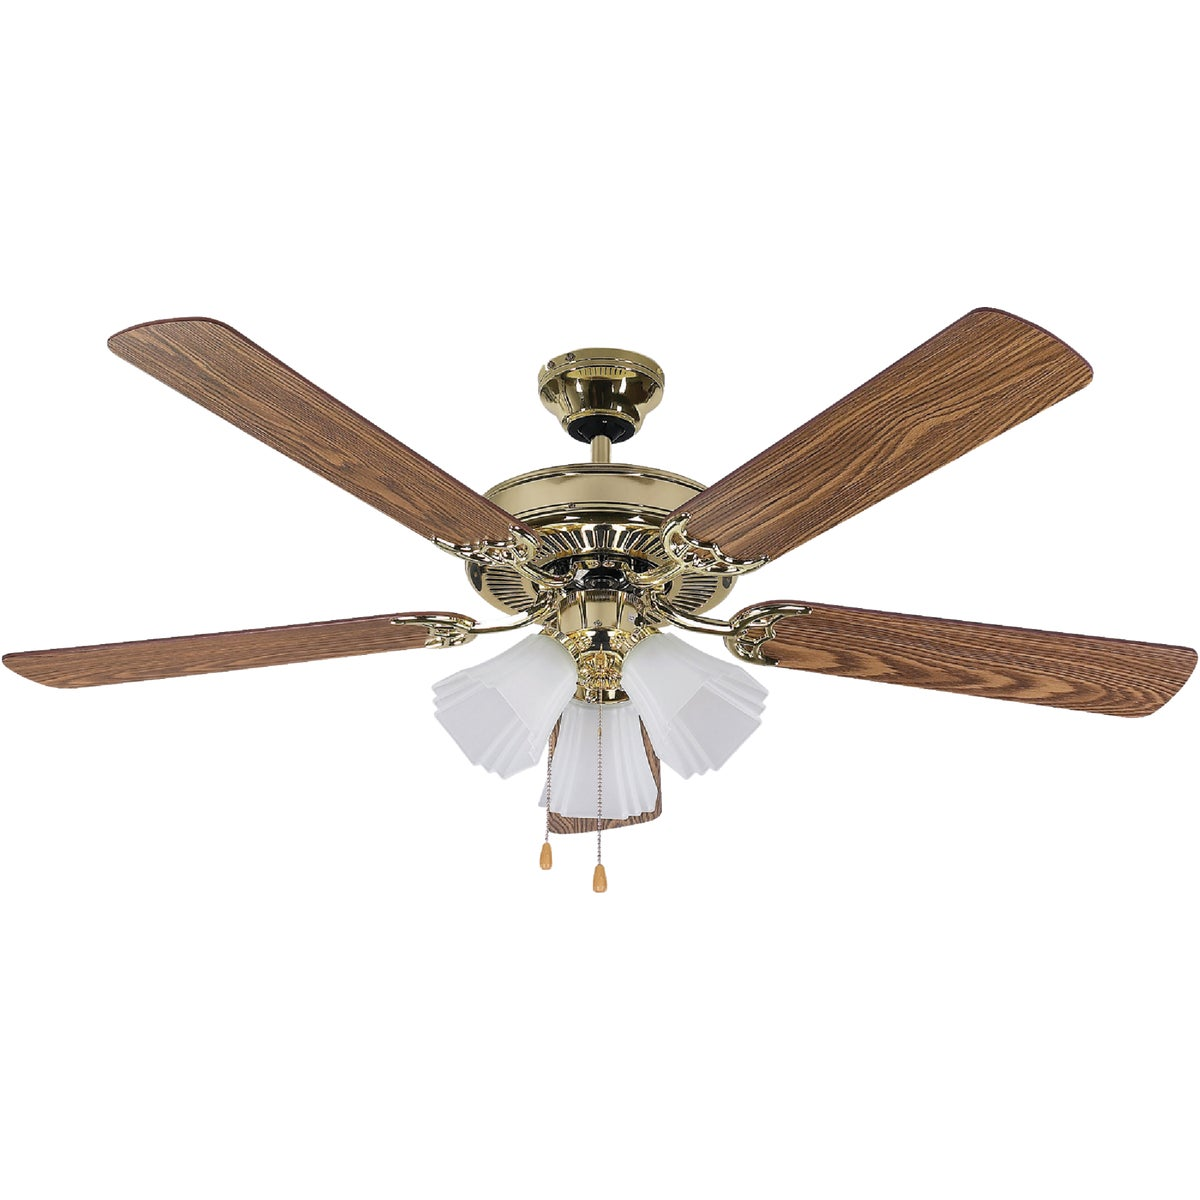 "52"" SHERWOOD PB CEIL FAN - CF52SHB5PB by Canarm Gs"